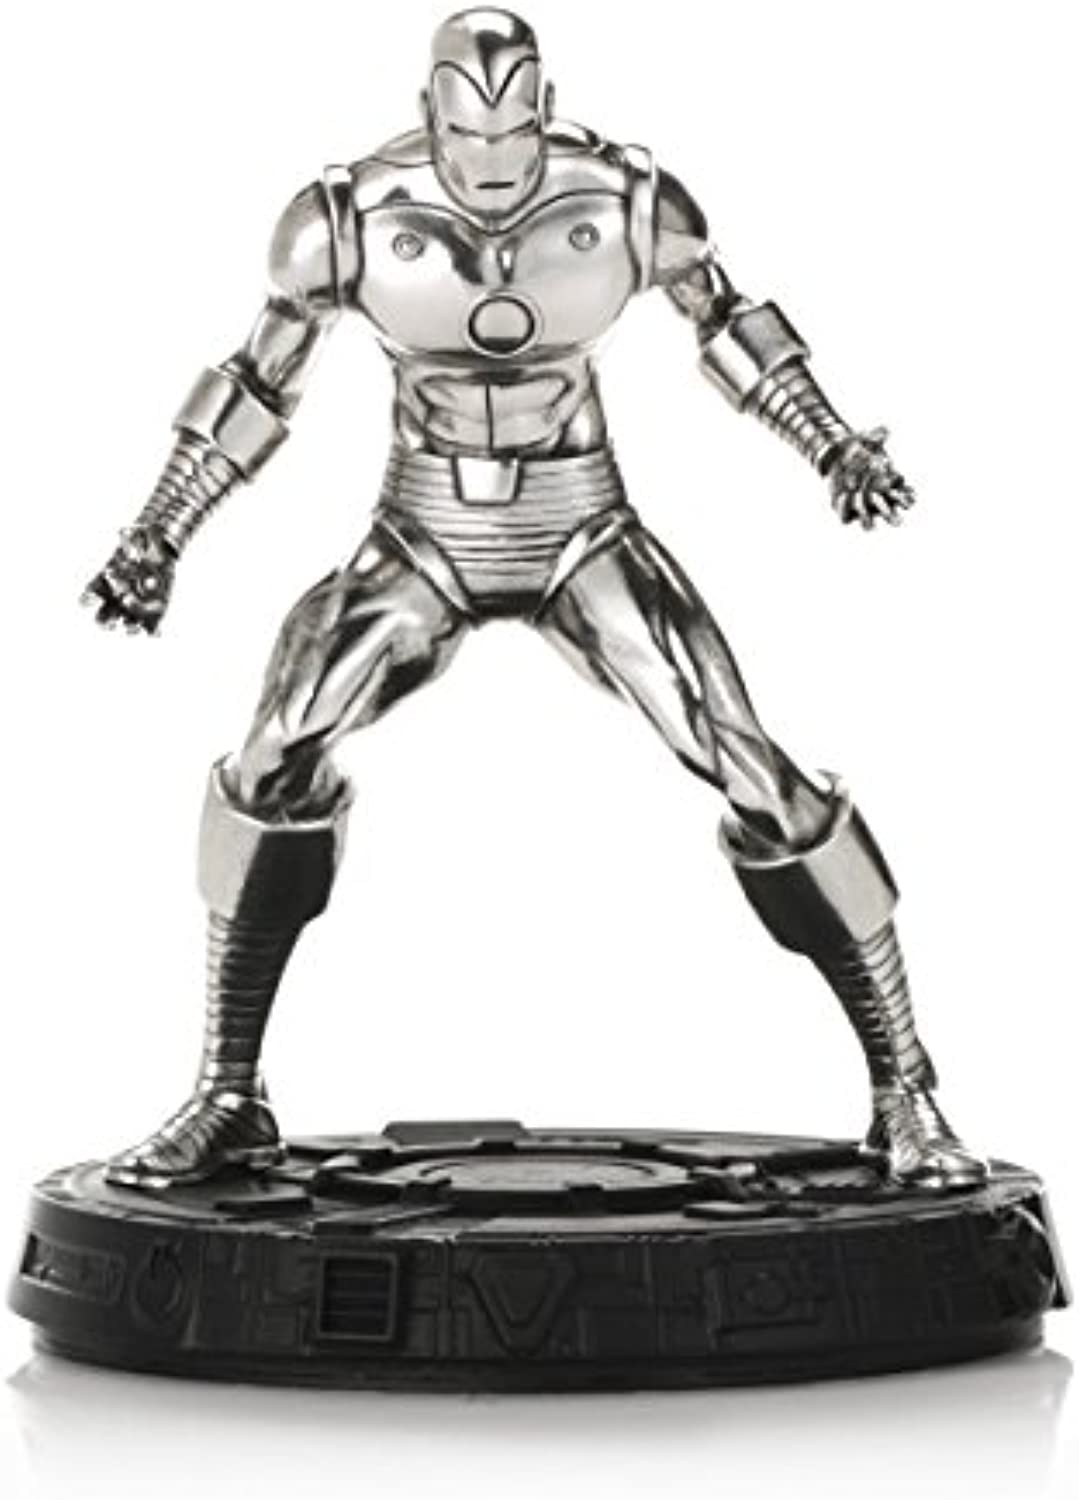 Royal Selangor Marvel-Kollektion, Iron Man-Figur